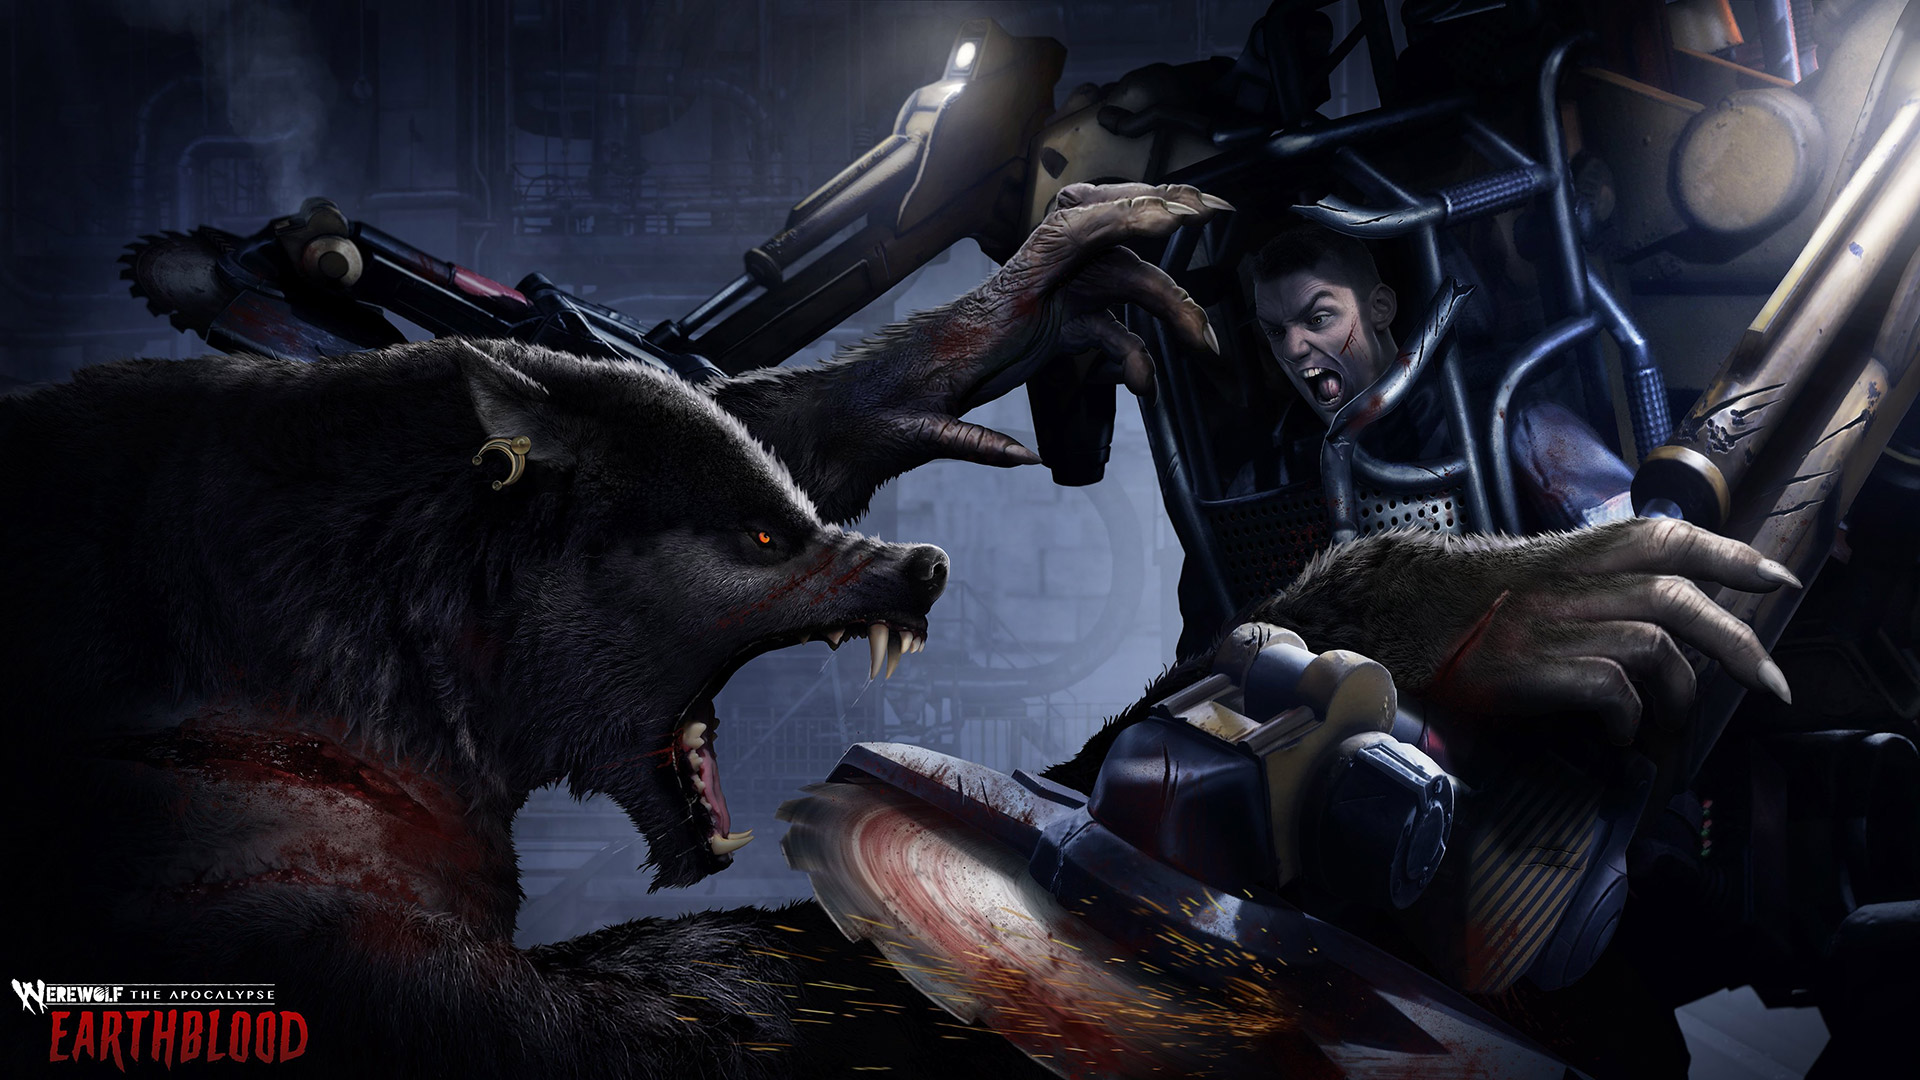 Action-RPG Werewolf: The Apocalypse - Earthblood planning a big PDXCon debut